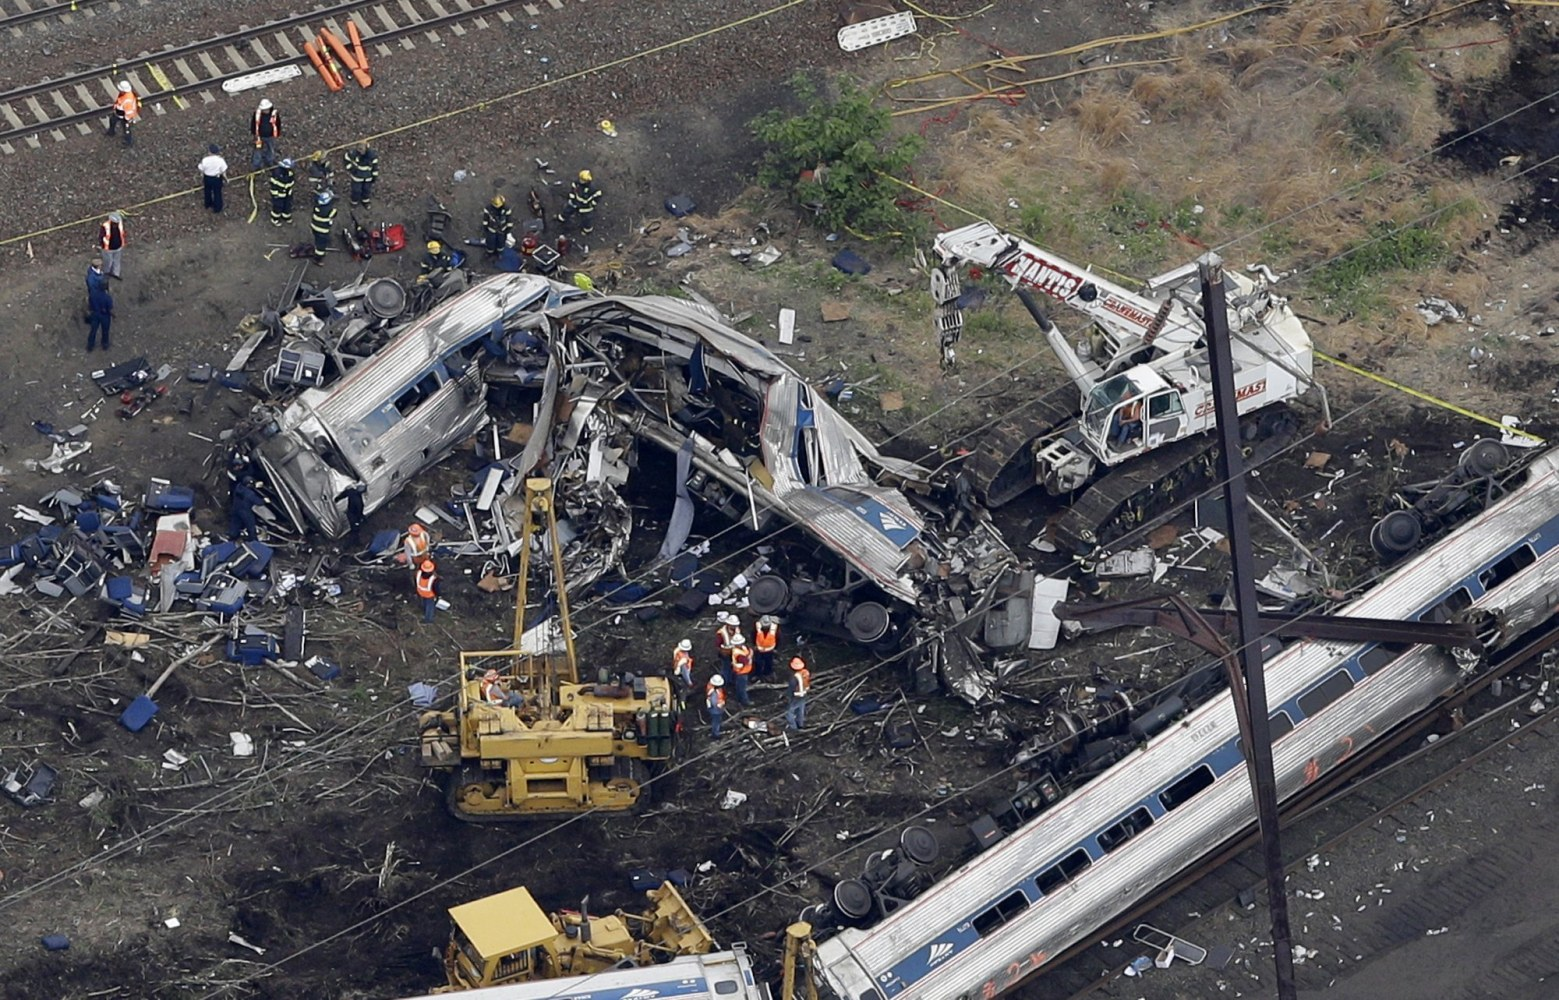 Human Error And High Speed Blamed For Deadly Philadelphia